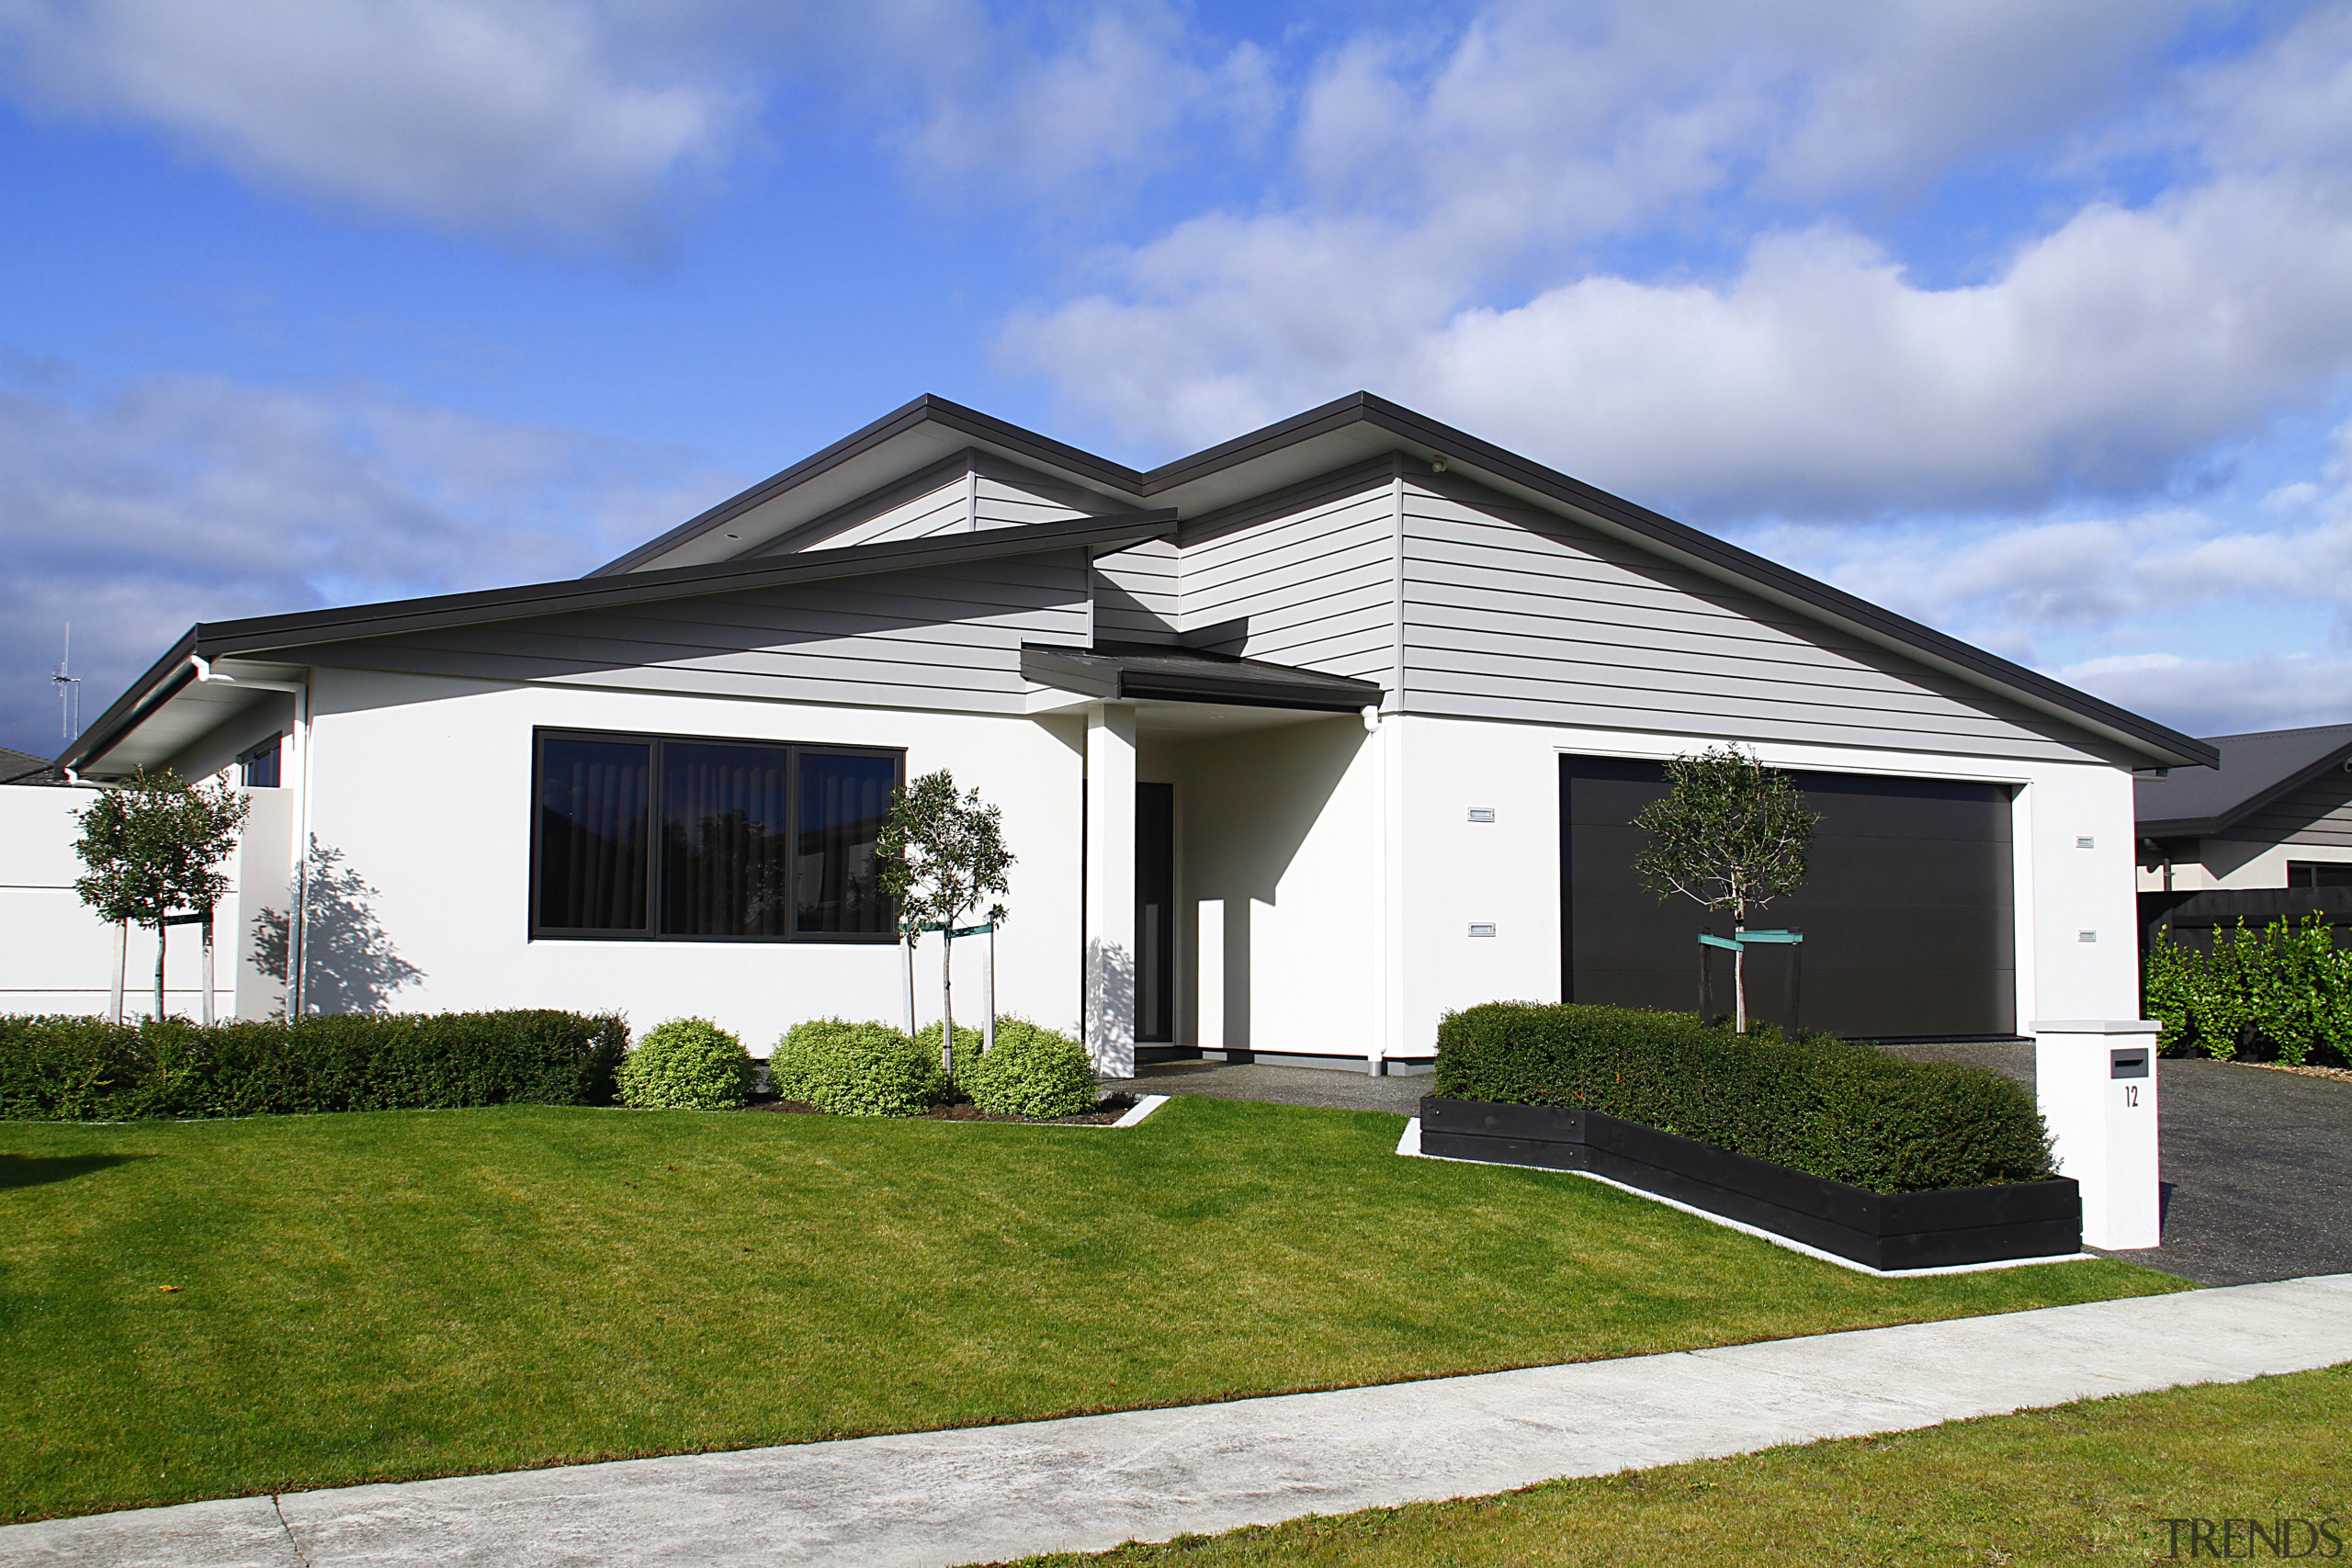 This house by Fowler Homes Manawatu features low-upkeep building, cottage, elevation, estate, facade, home, house, property, real estate, residential area, roof, siding, sky, villa, teal, white